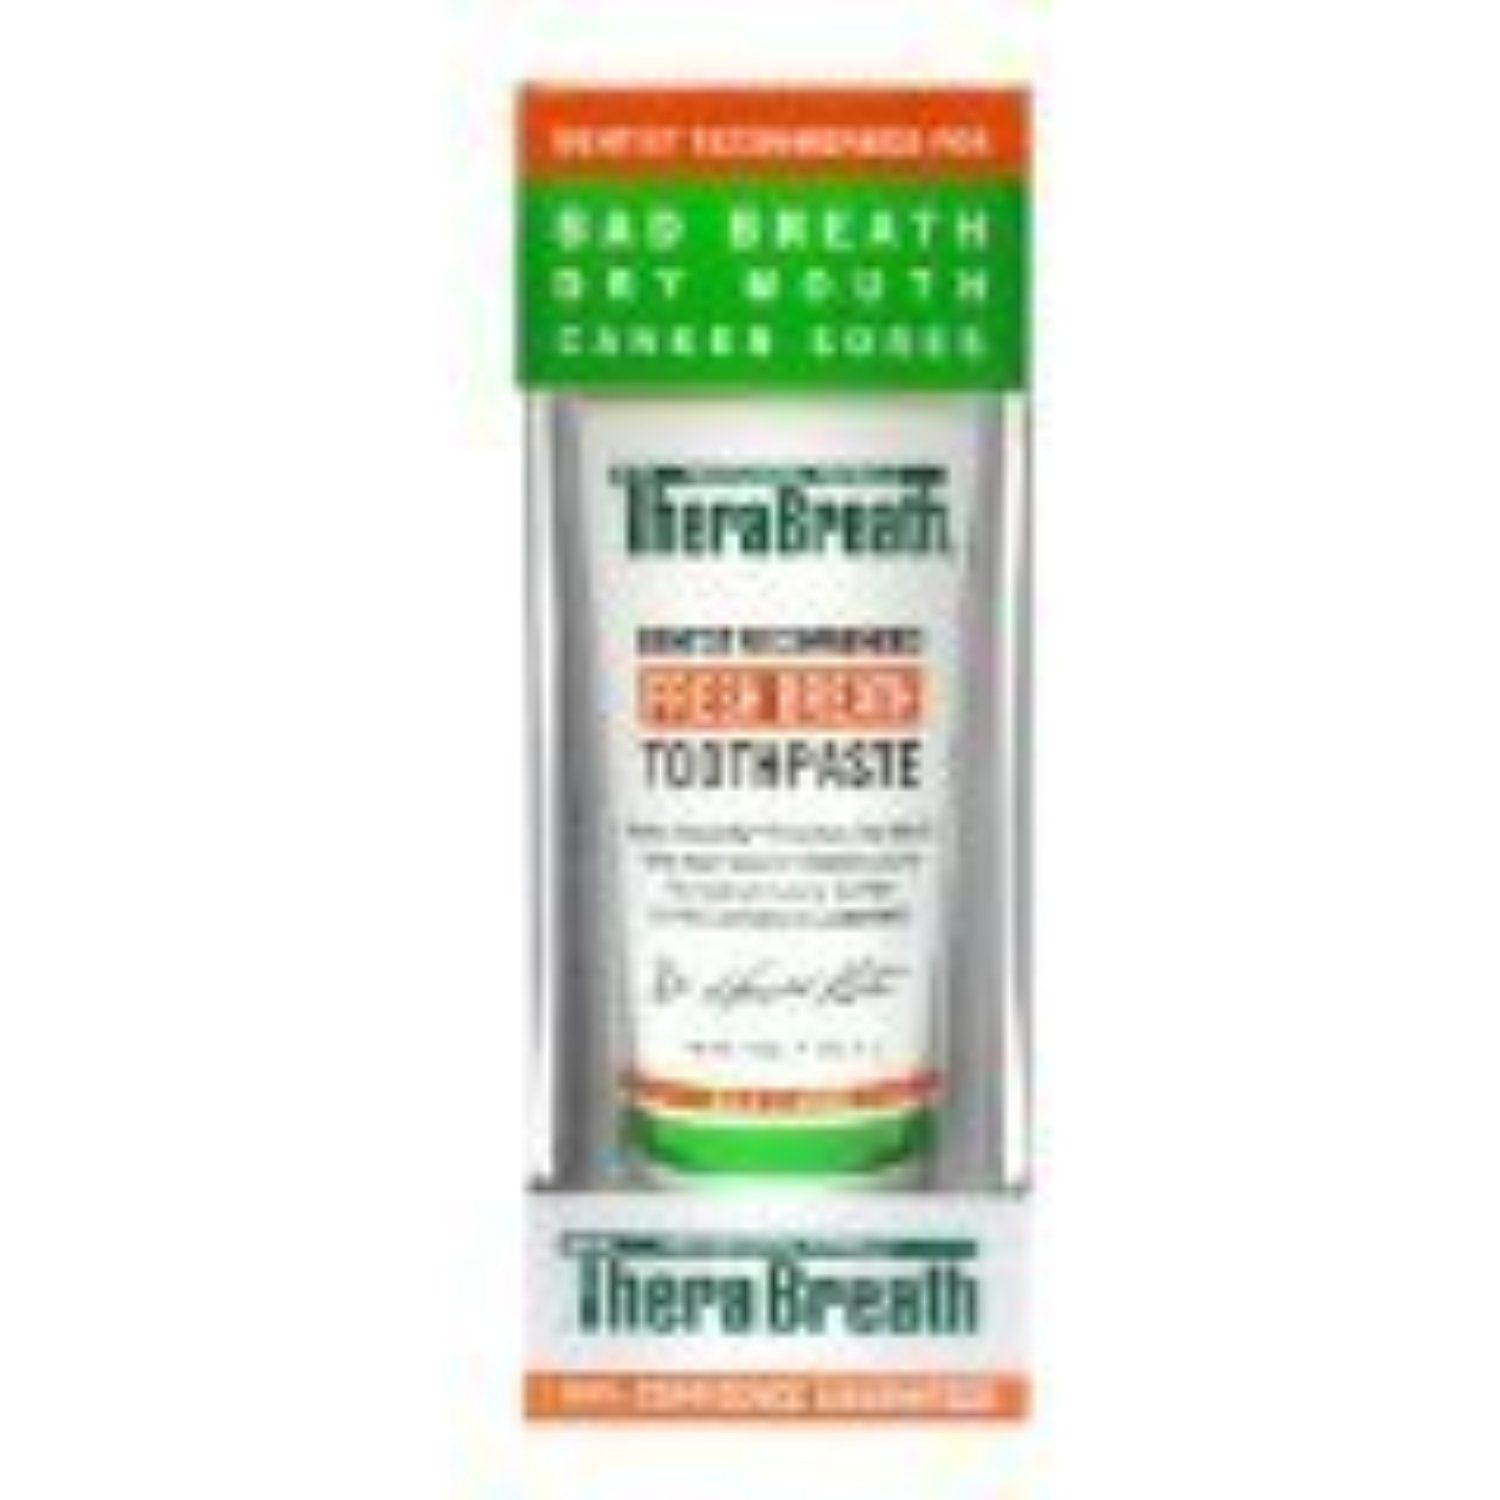 Dr. Katz Thera Breath Toothpaste With Fluoride, 4 oz. by